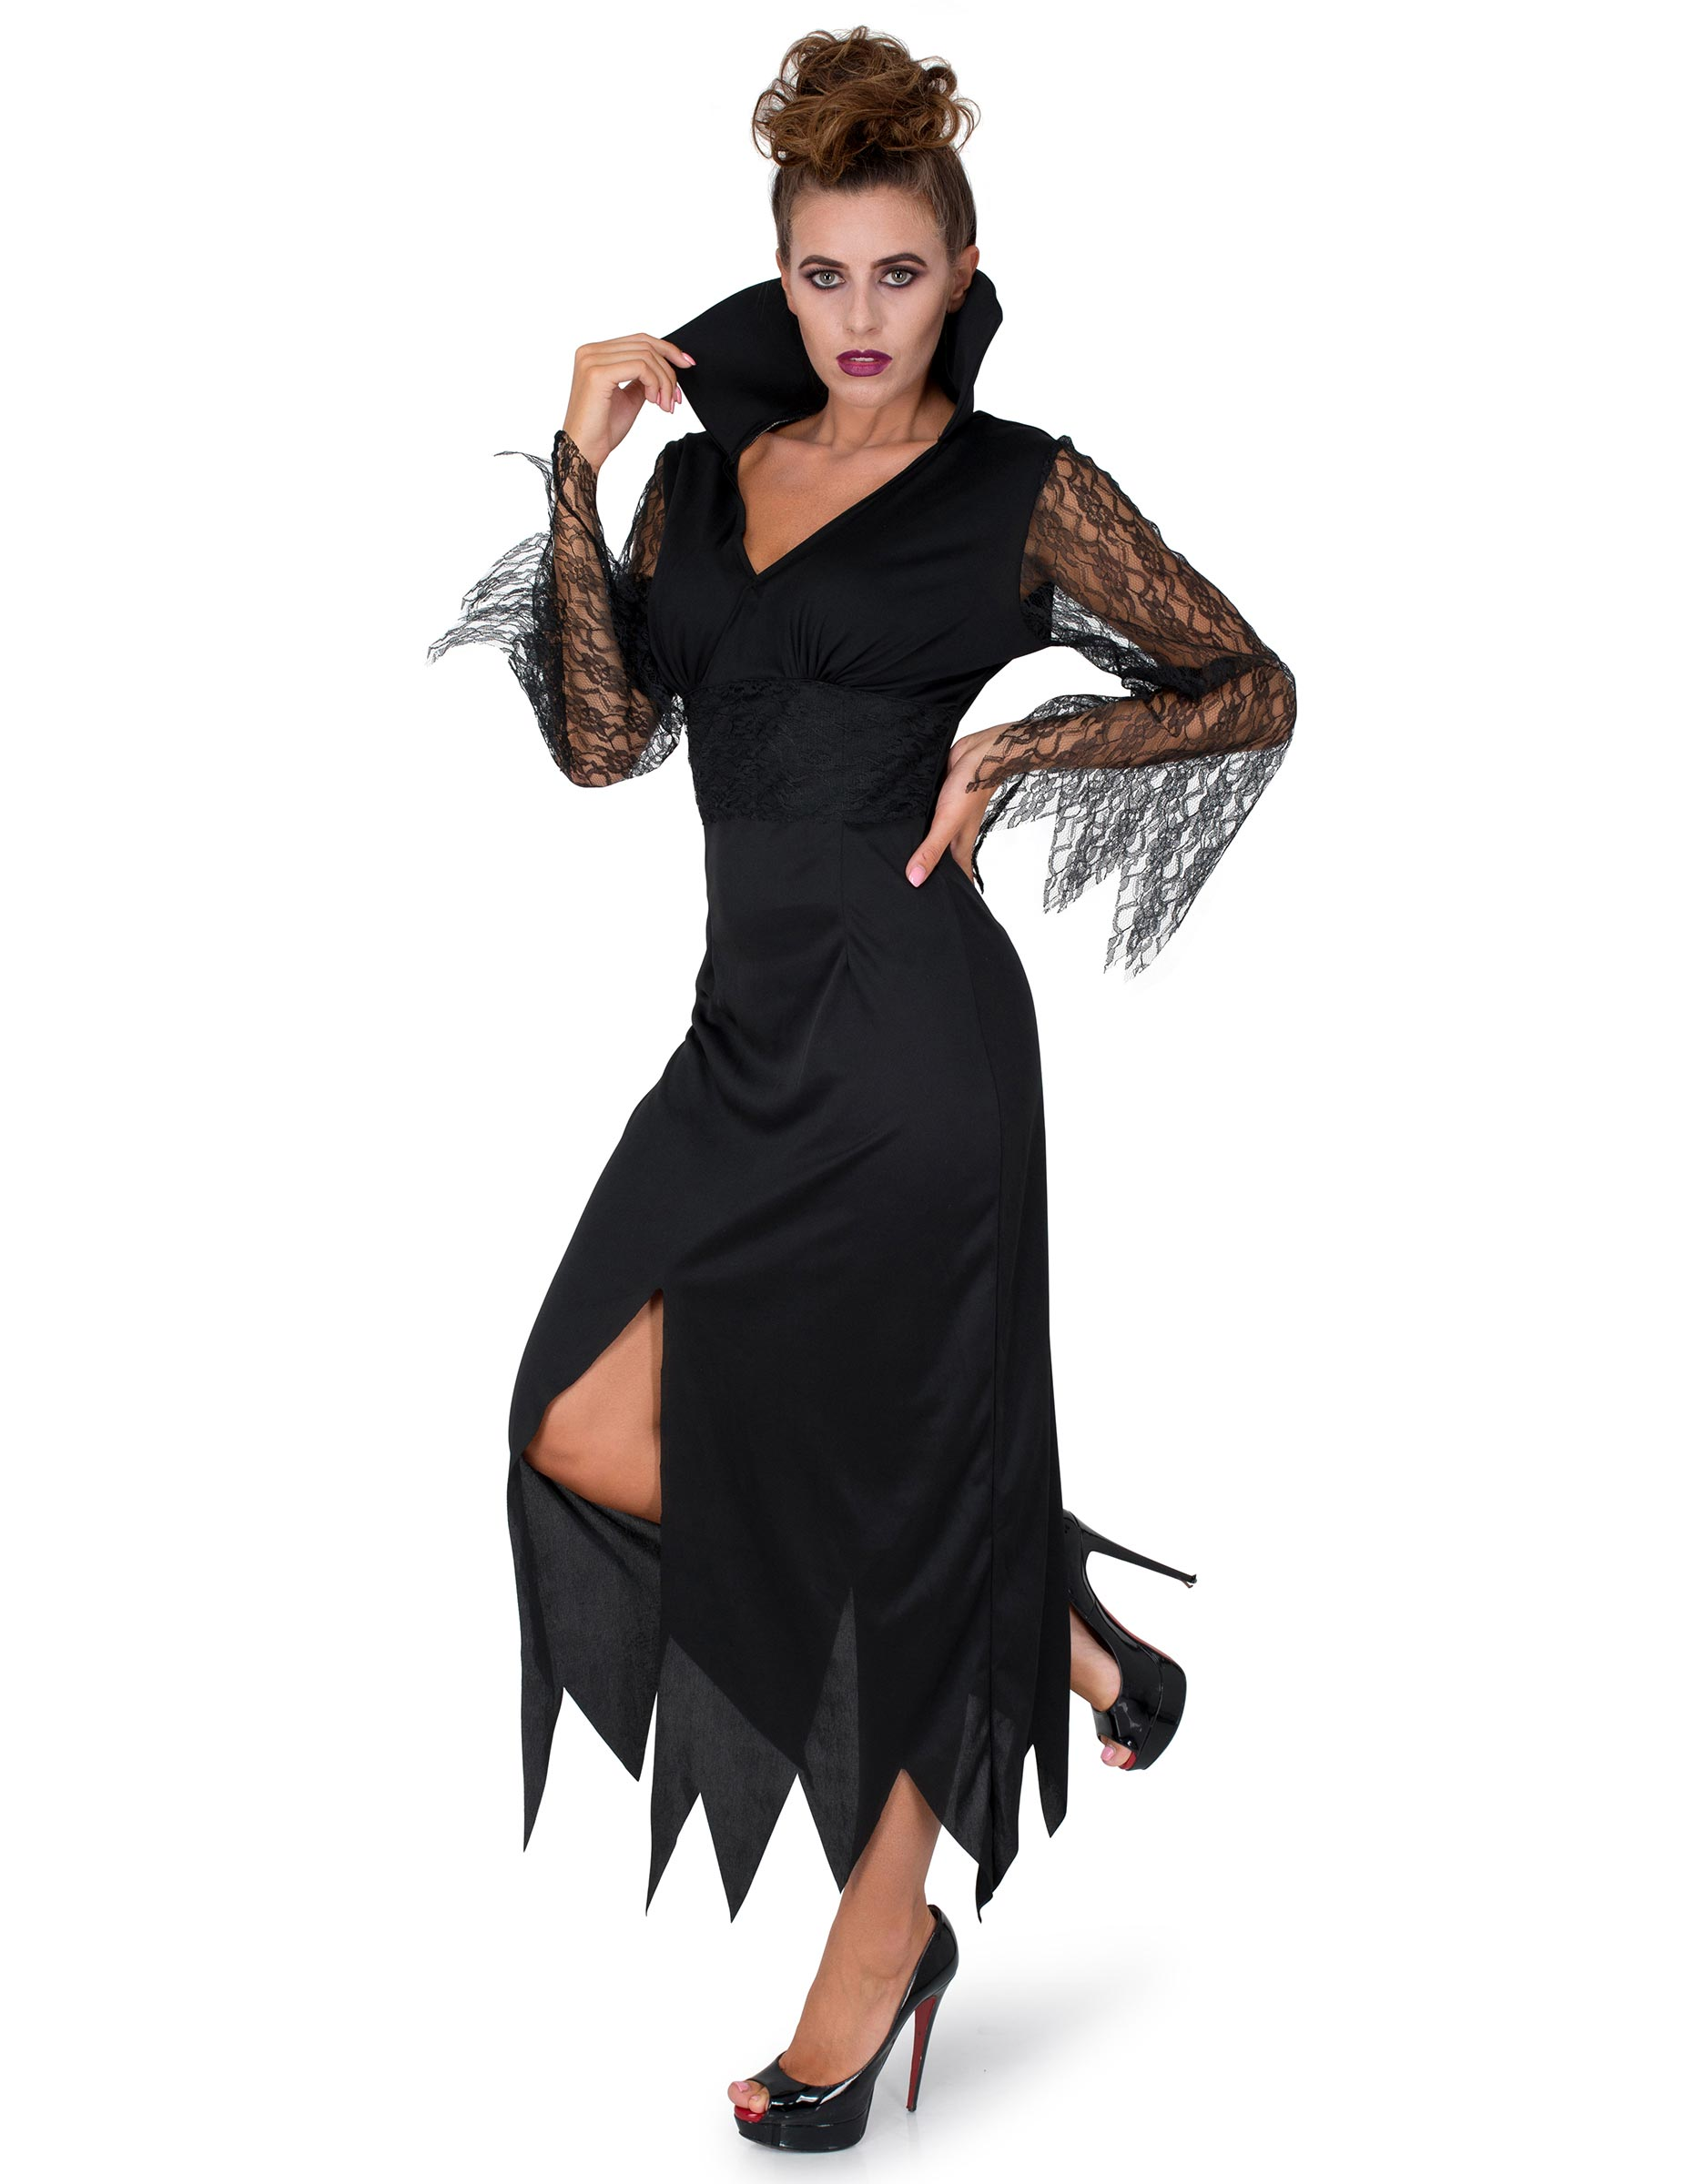 Costume strega in pizzo nero da donna Halloween su VegaooParty ... 6e5ec3107018